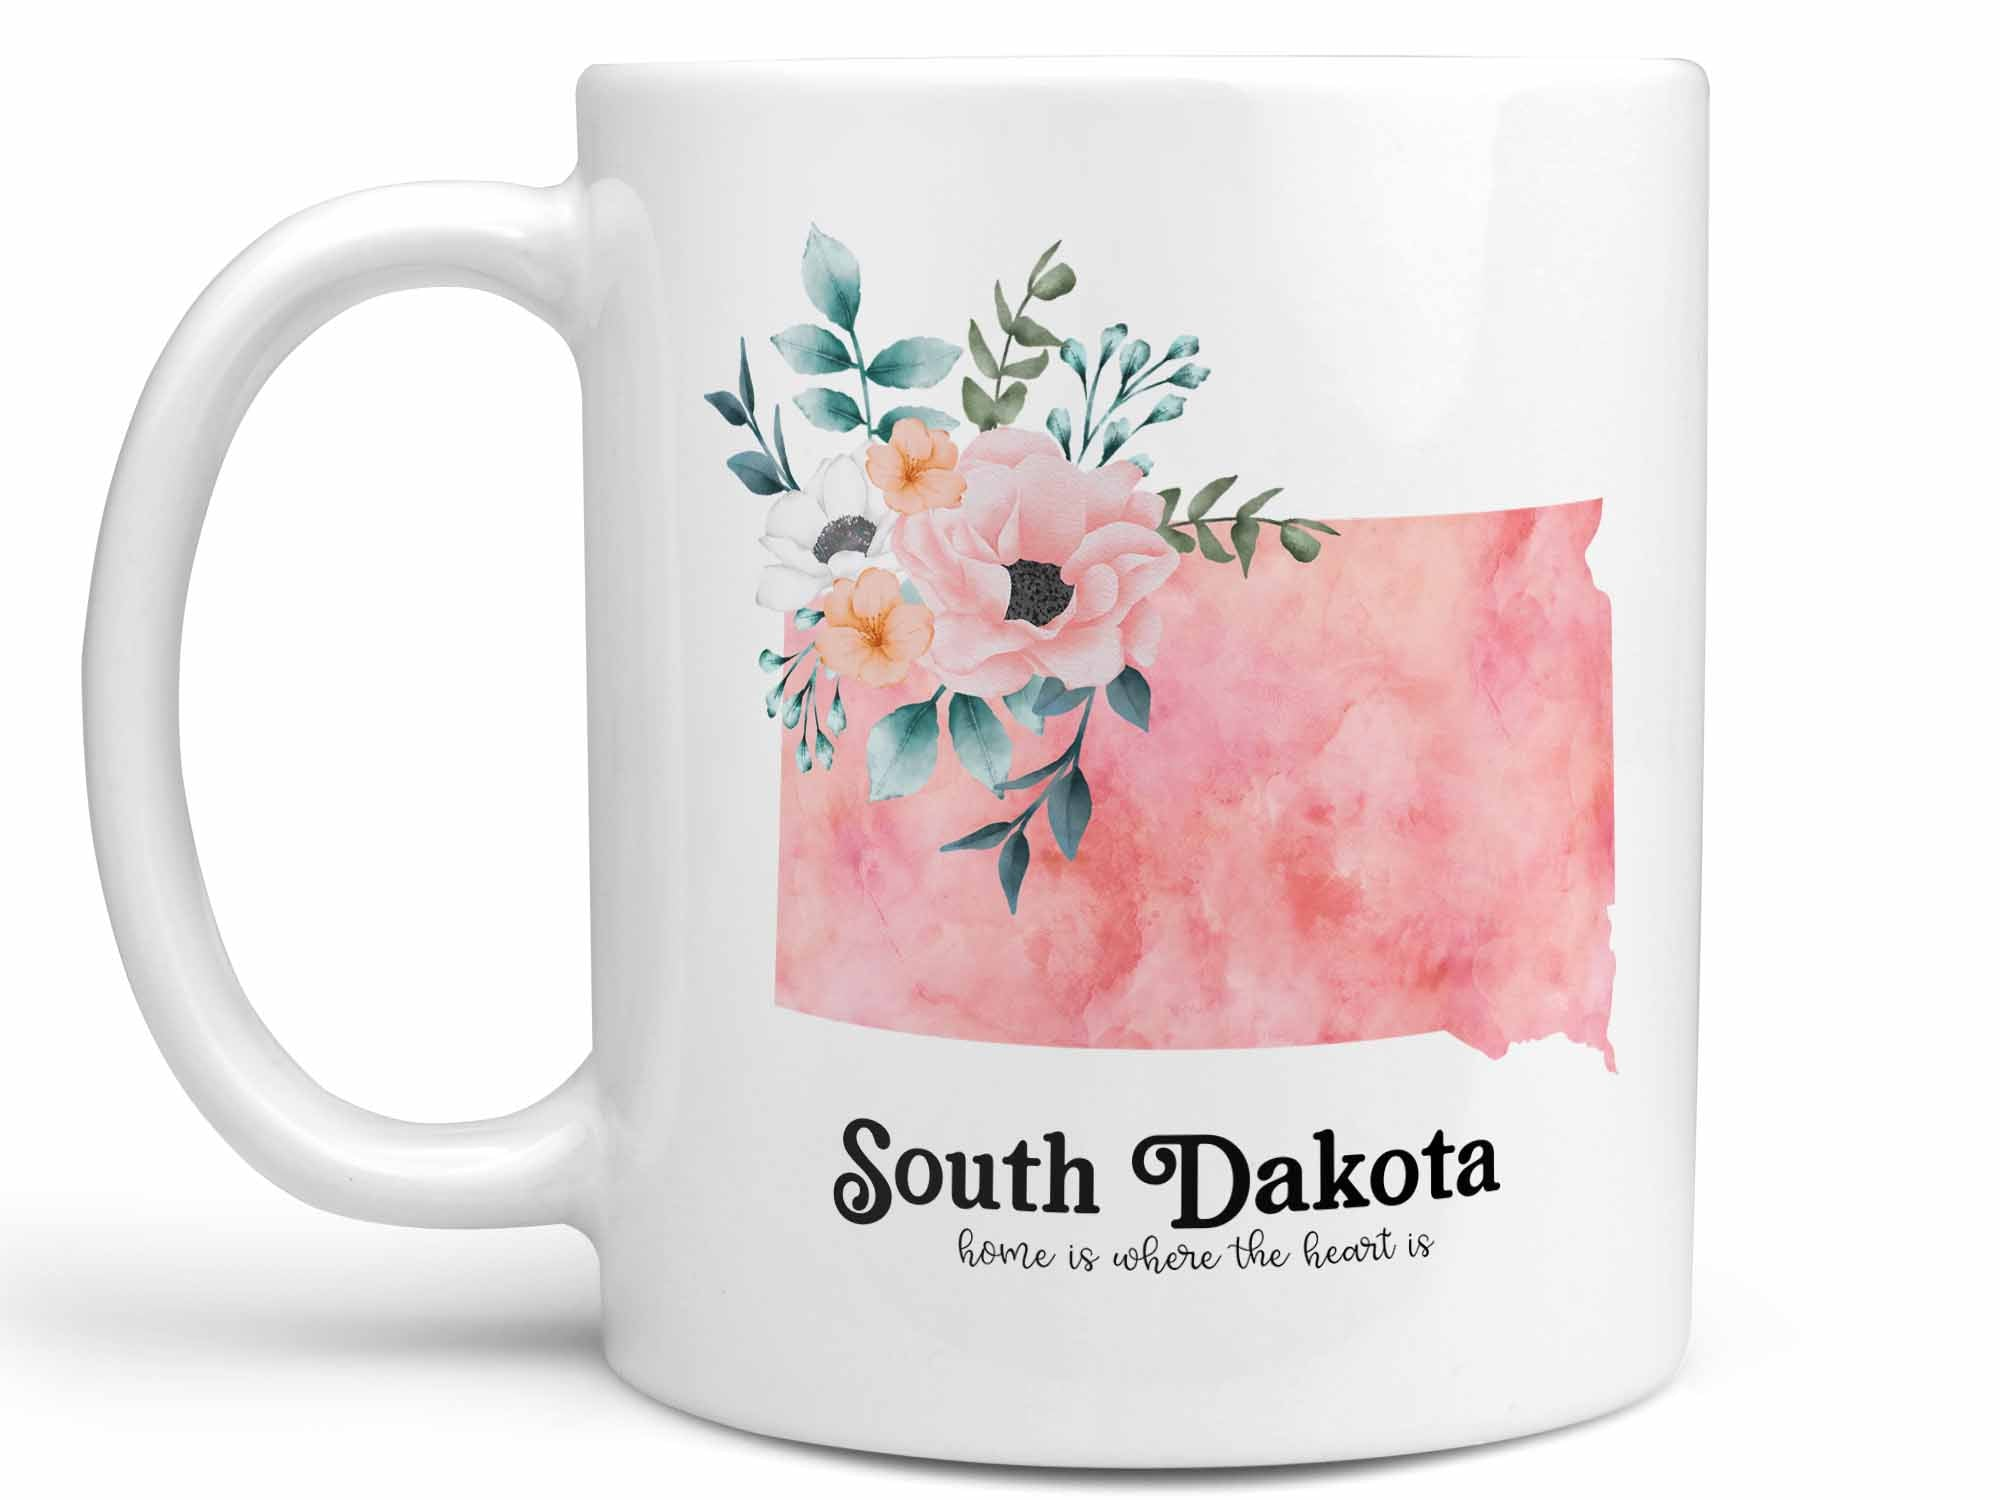 South Dakota Home Coffee Mug,Coffee Mugs Never Lie,Coffee Mug